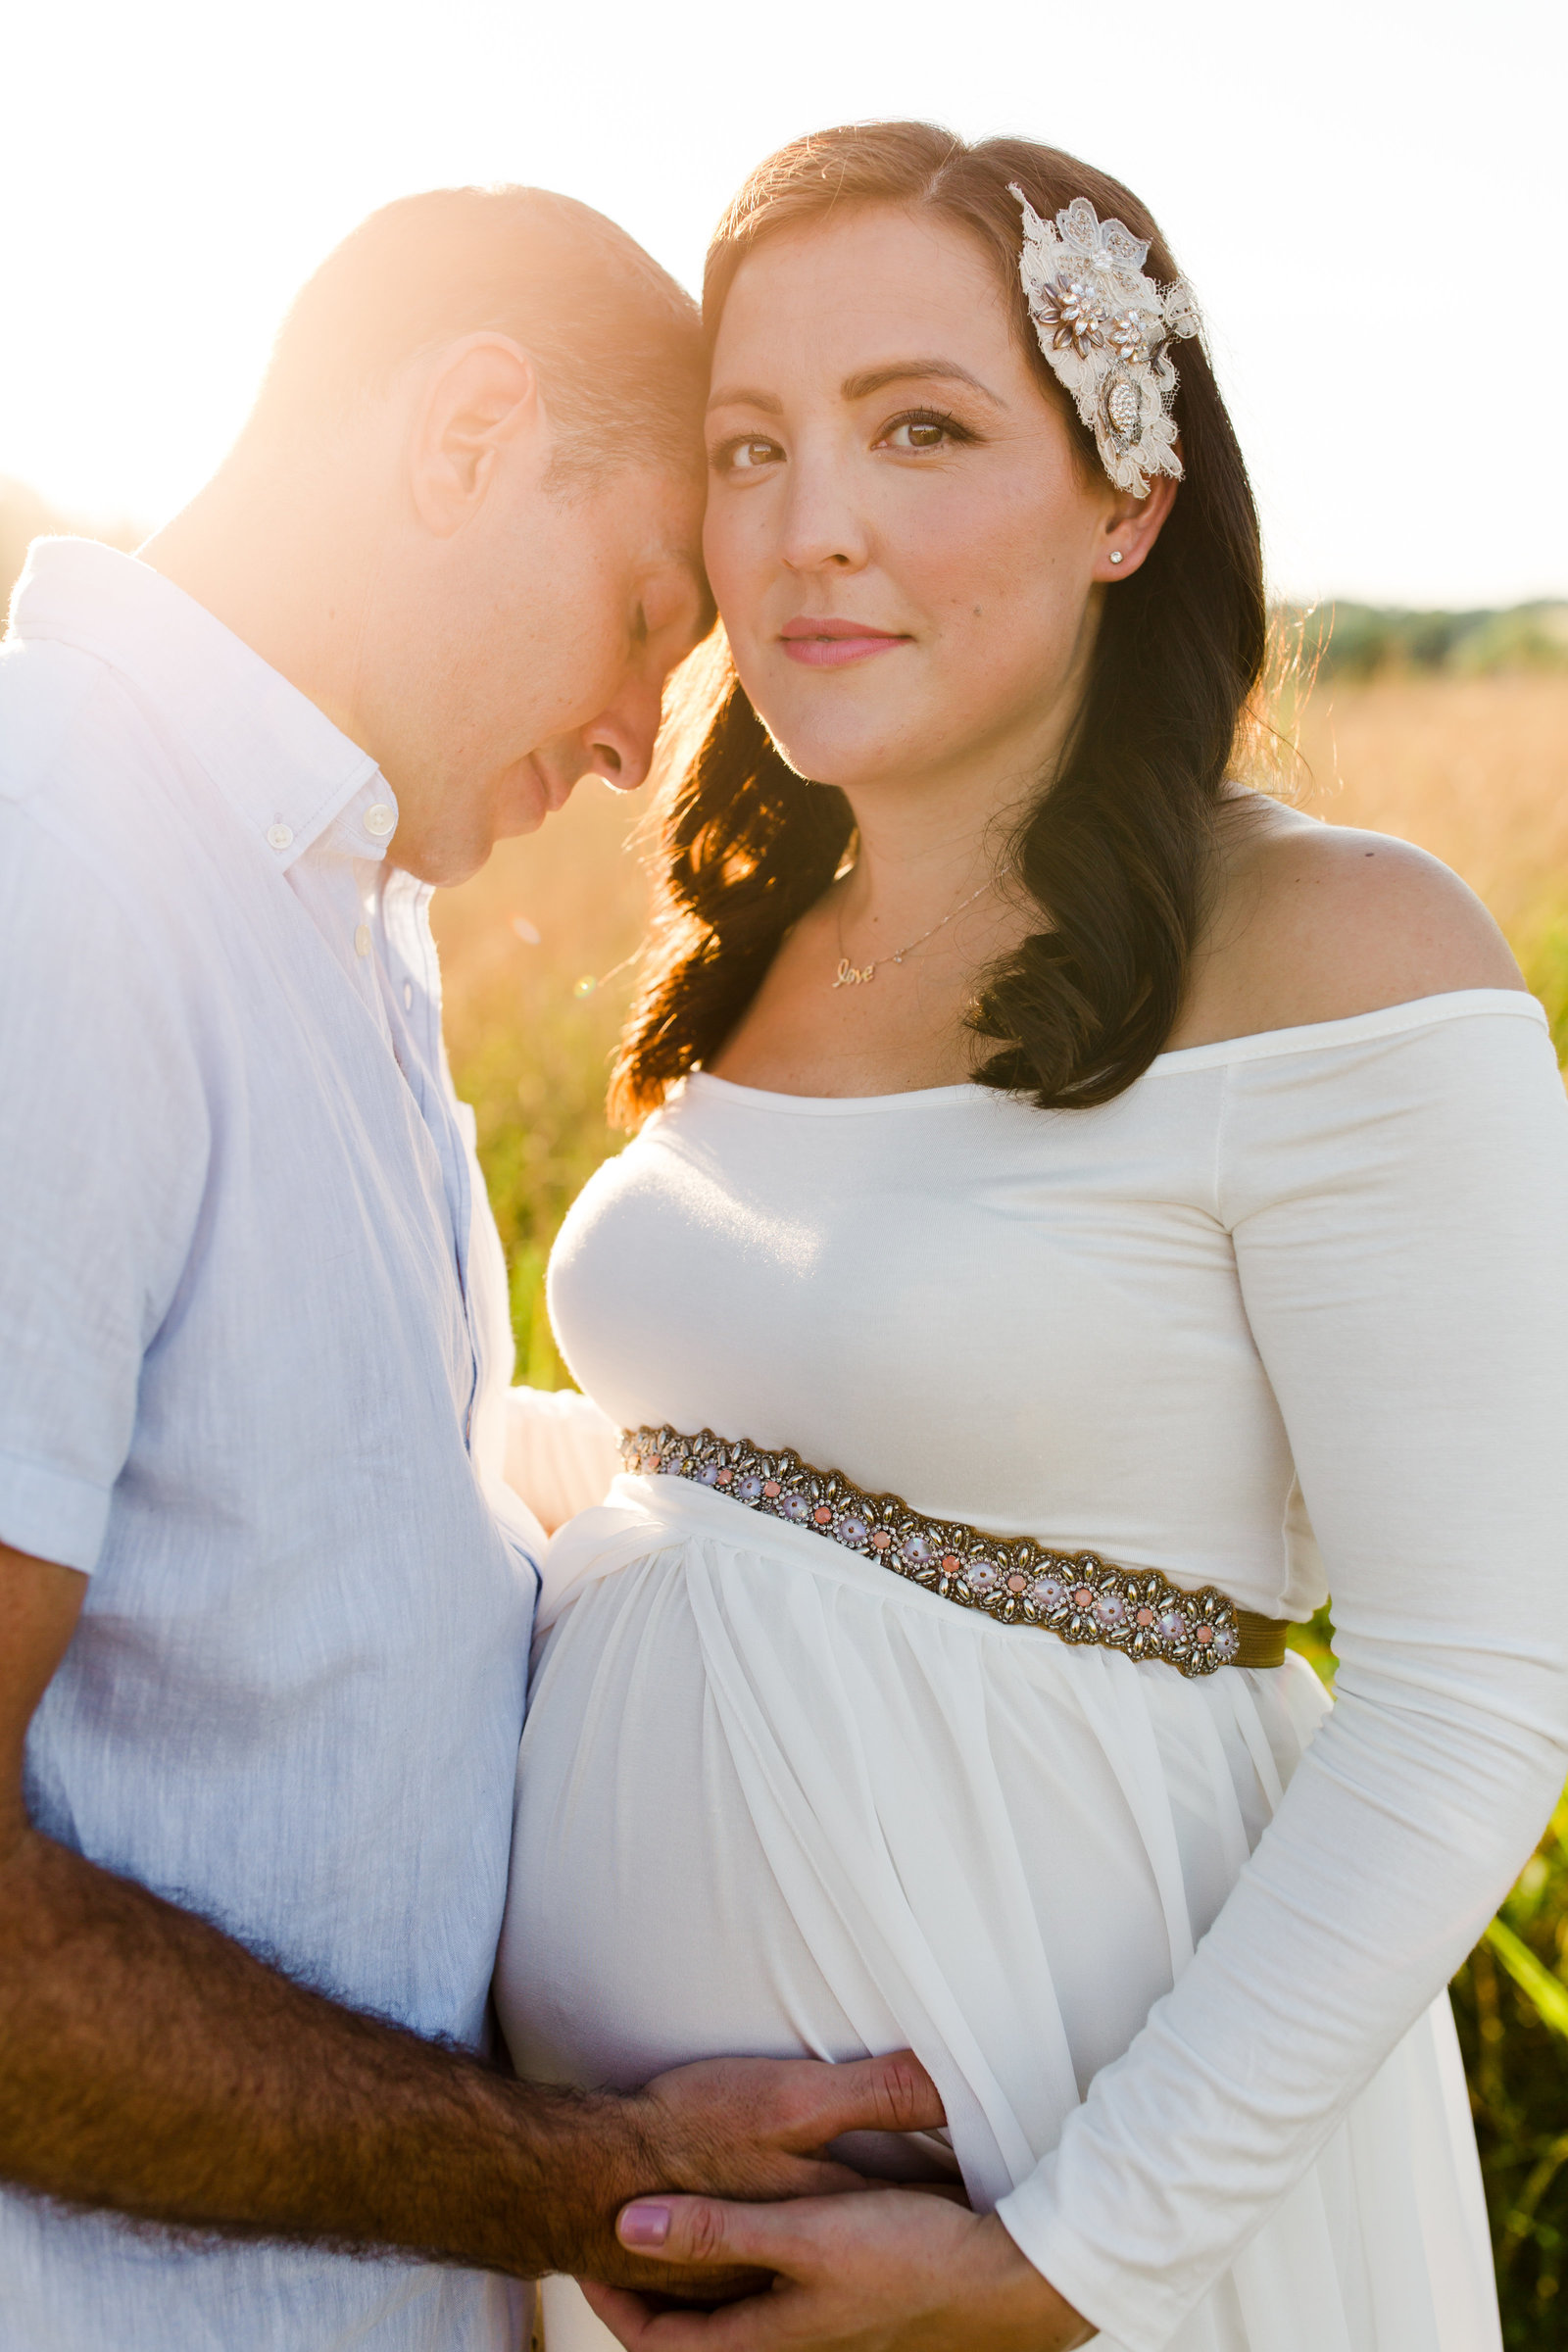 manassas-battlefield-maternity-photography-1